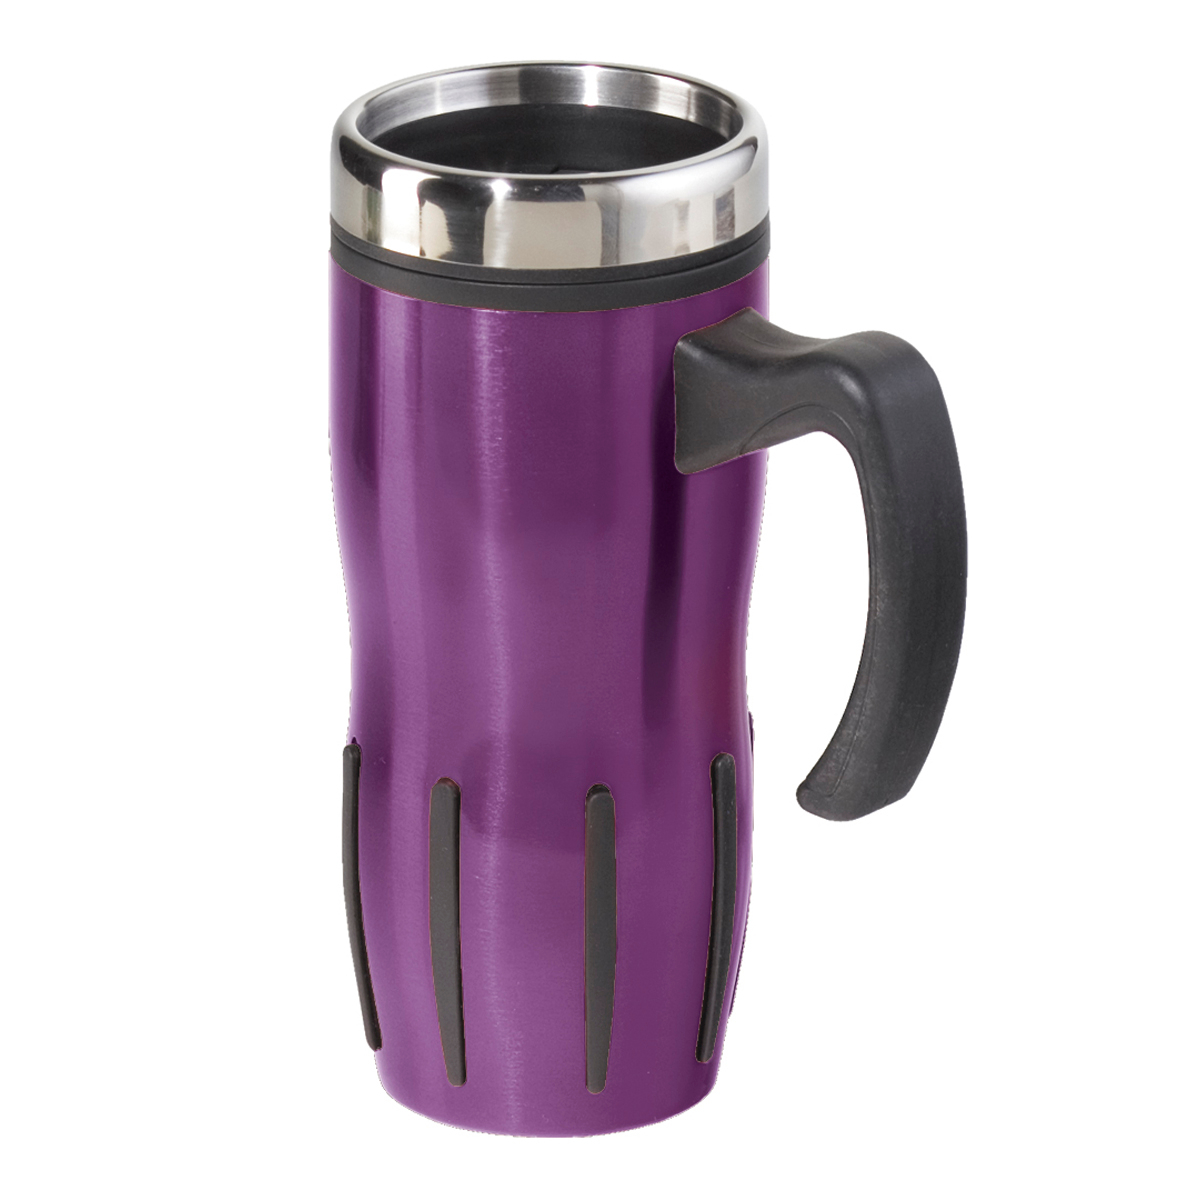 Oggi Lustre Purple Stainless Steel 16 Ounce Multi-Grip Mug